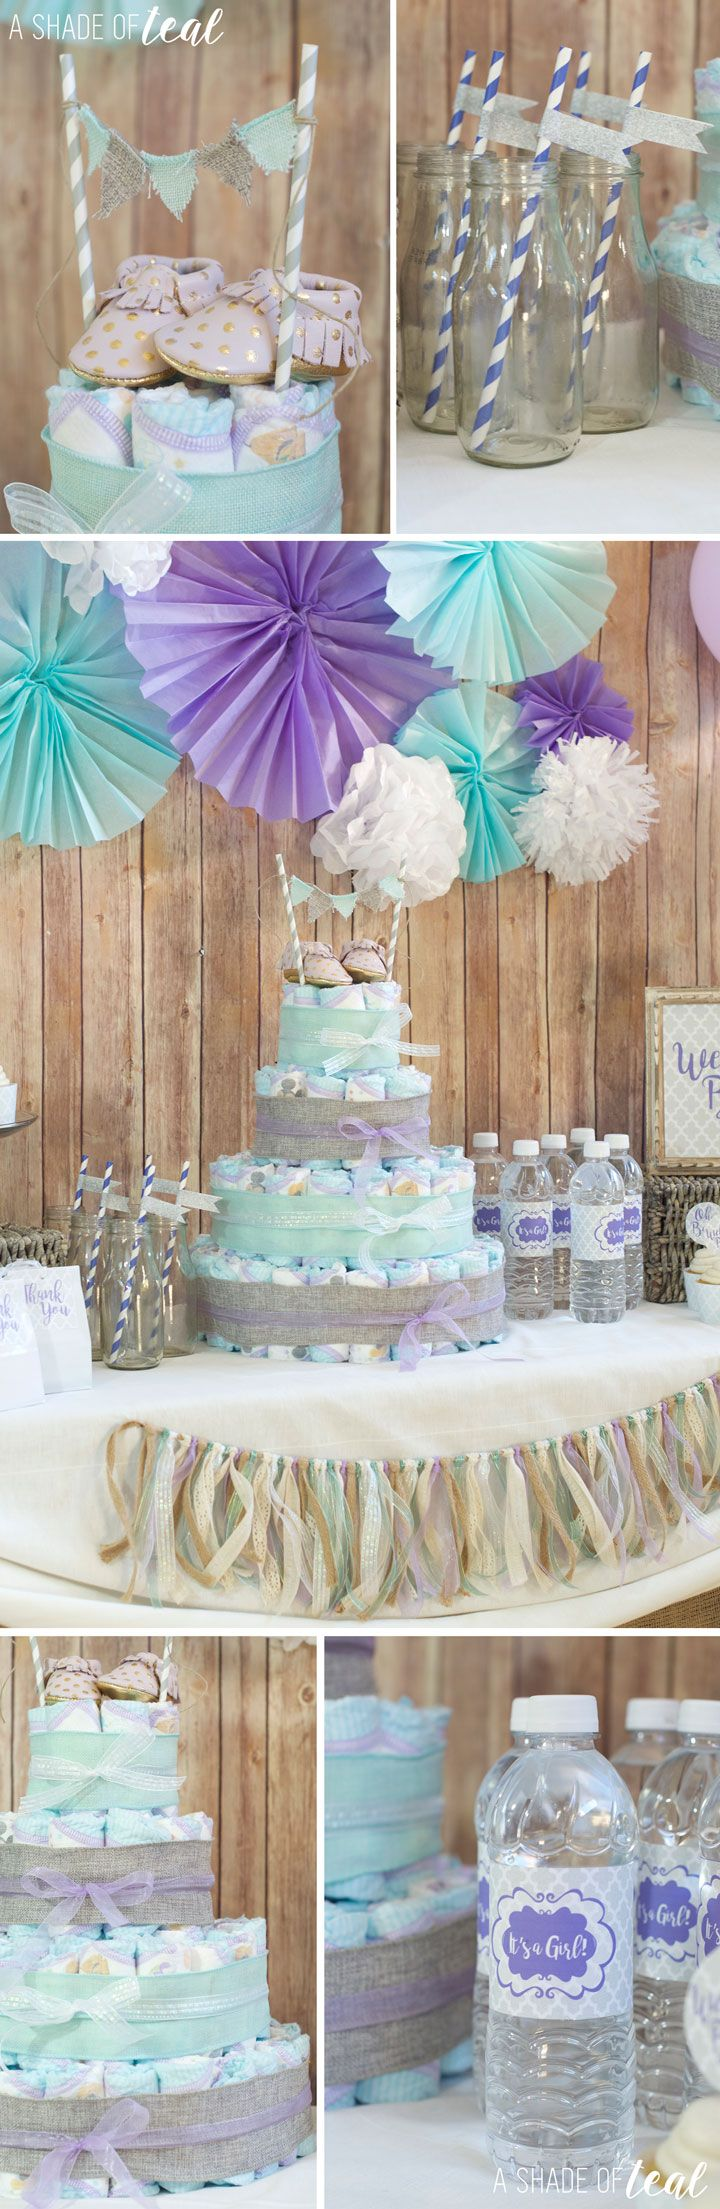 71 best Baby Shower Inspiration images on Pinterest | A kiss, Bridal shower  favors and Candy bar wrappers